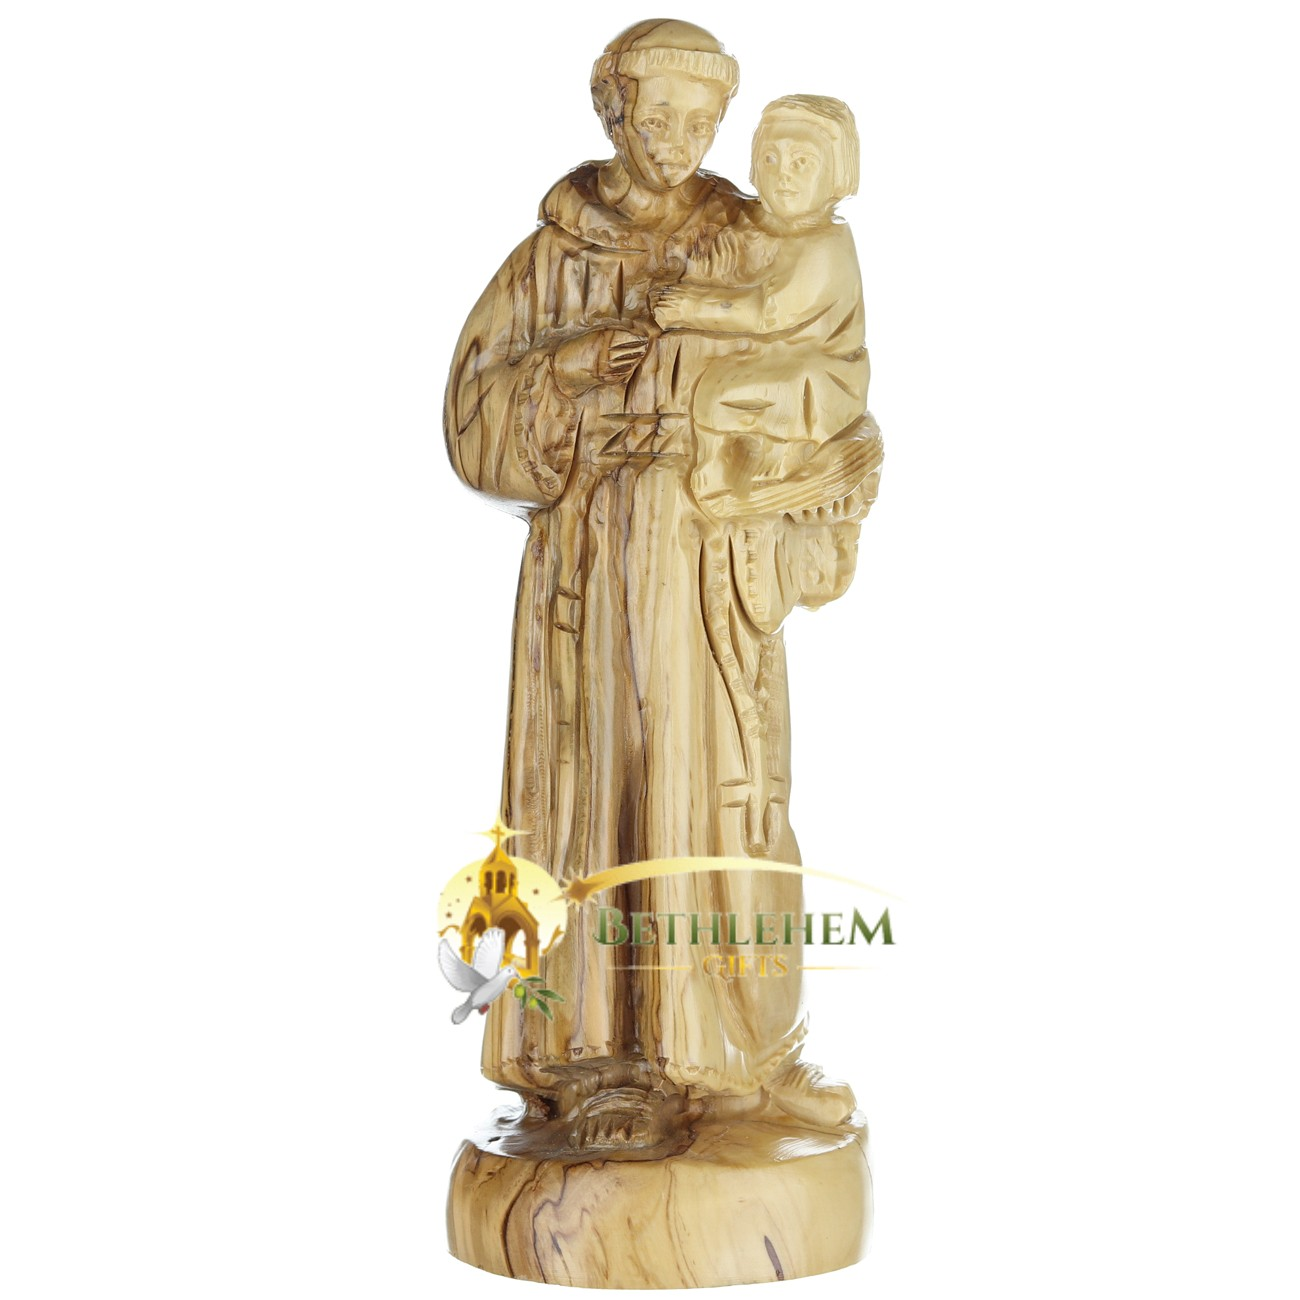 Saint Anthony Olive Wood Statue from Bethlehem